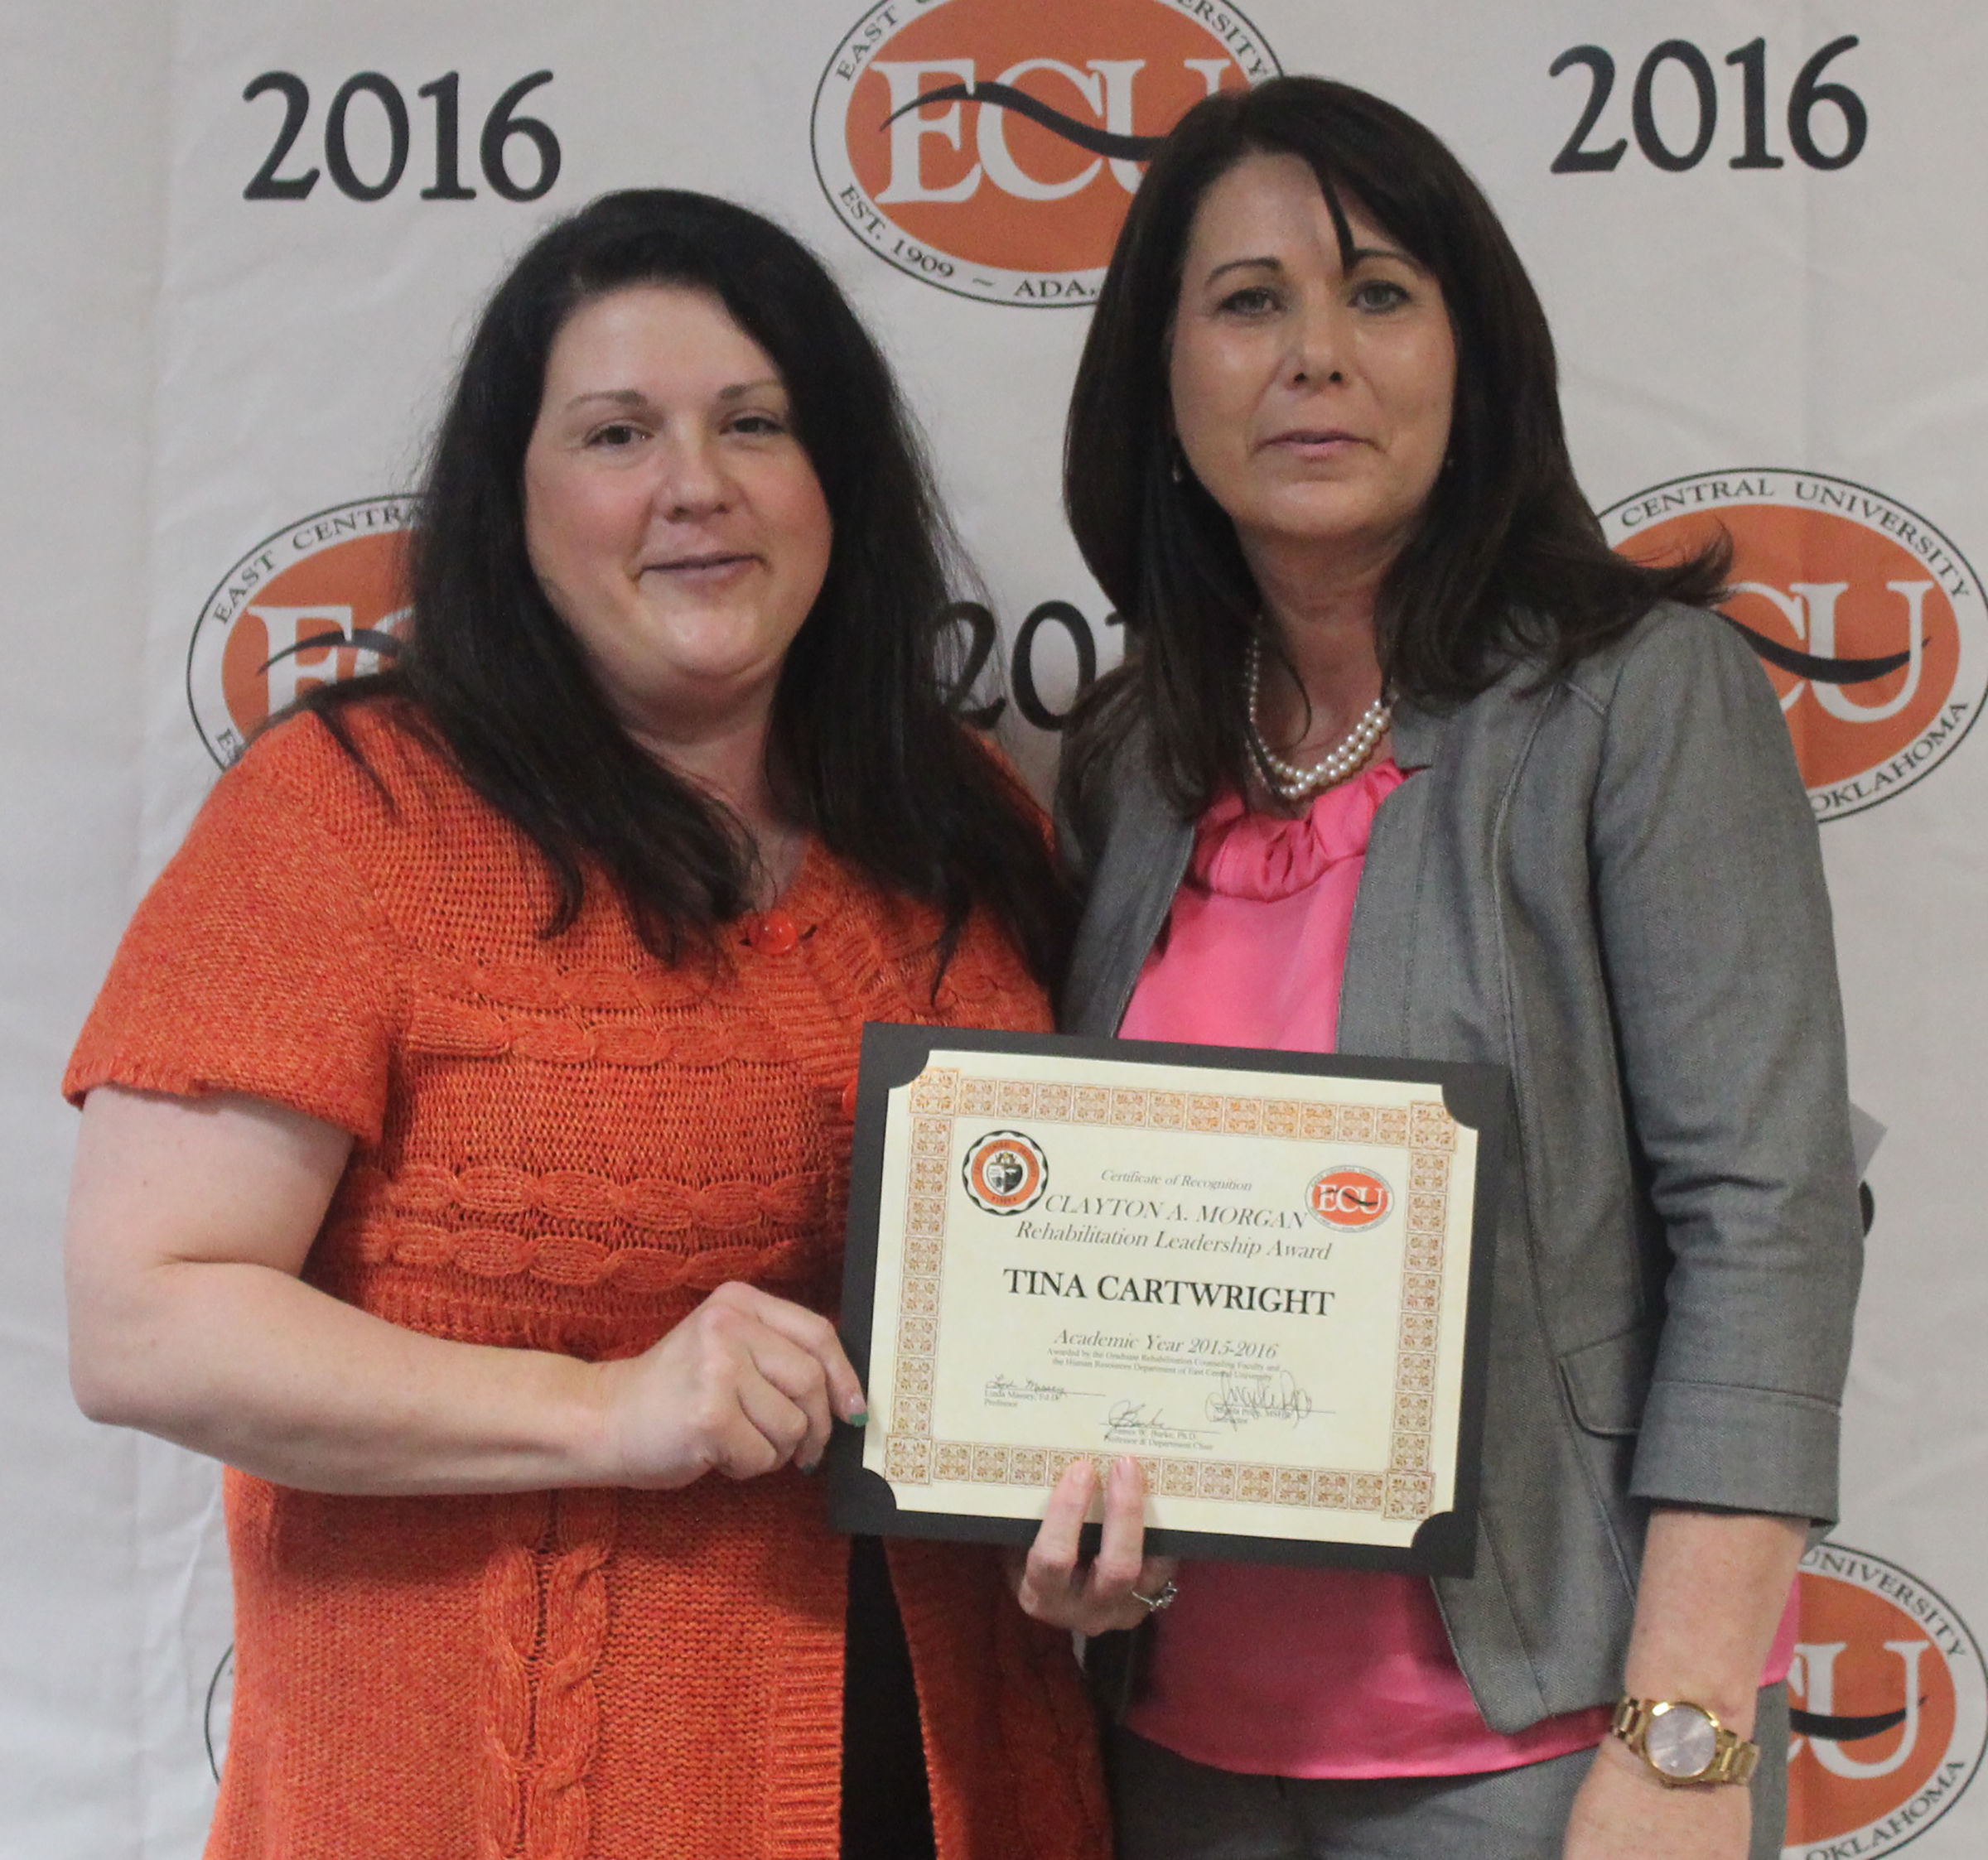 1463751961 cartwright   clayton a. morgan rehab leadership award  2016